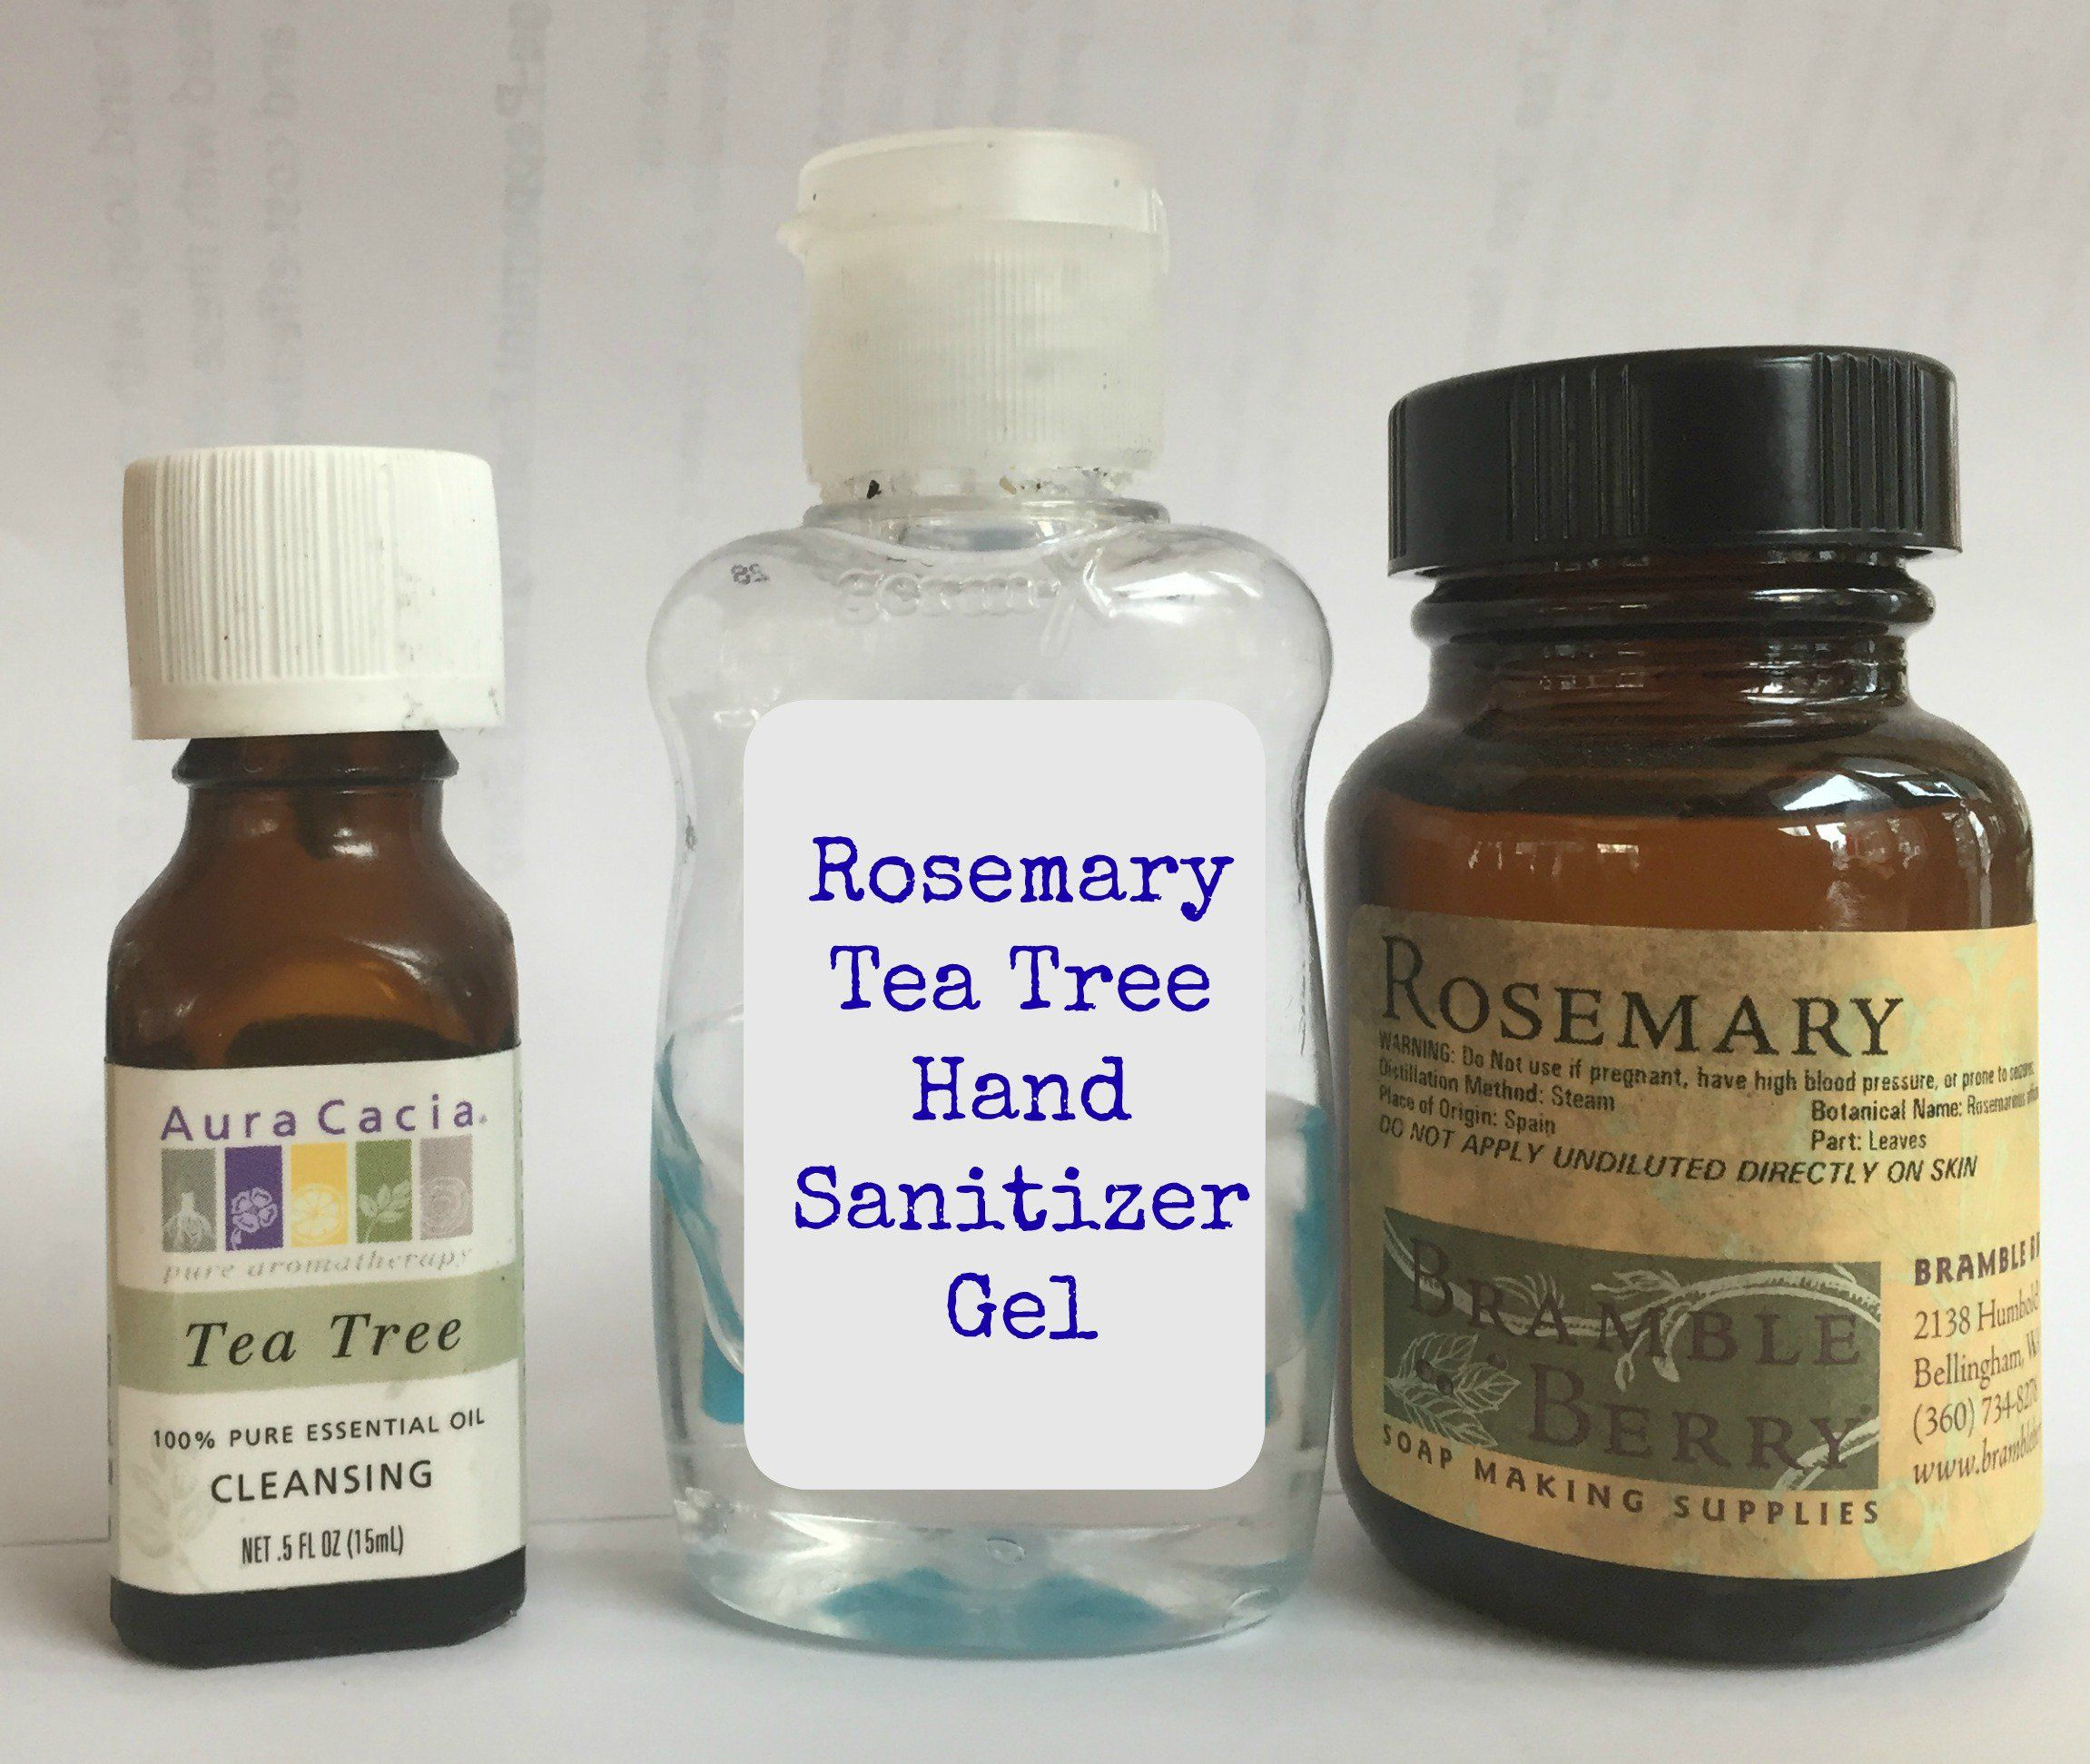 Natural Solutions Diy Home Rosemary Tea Tree Hand Sanitizer Gel